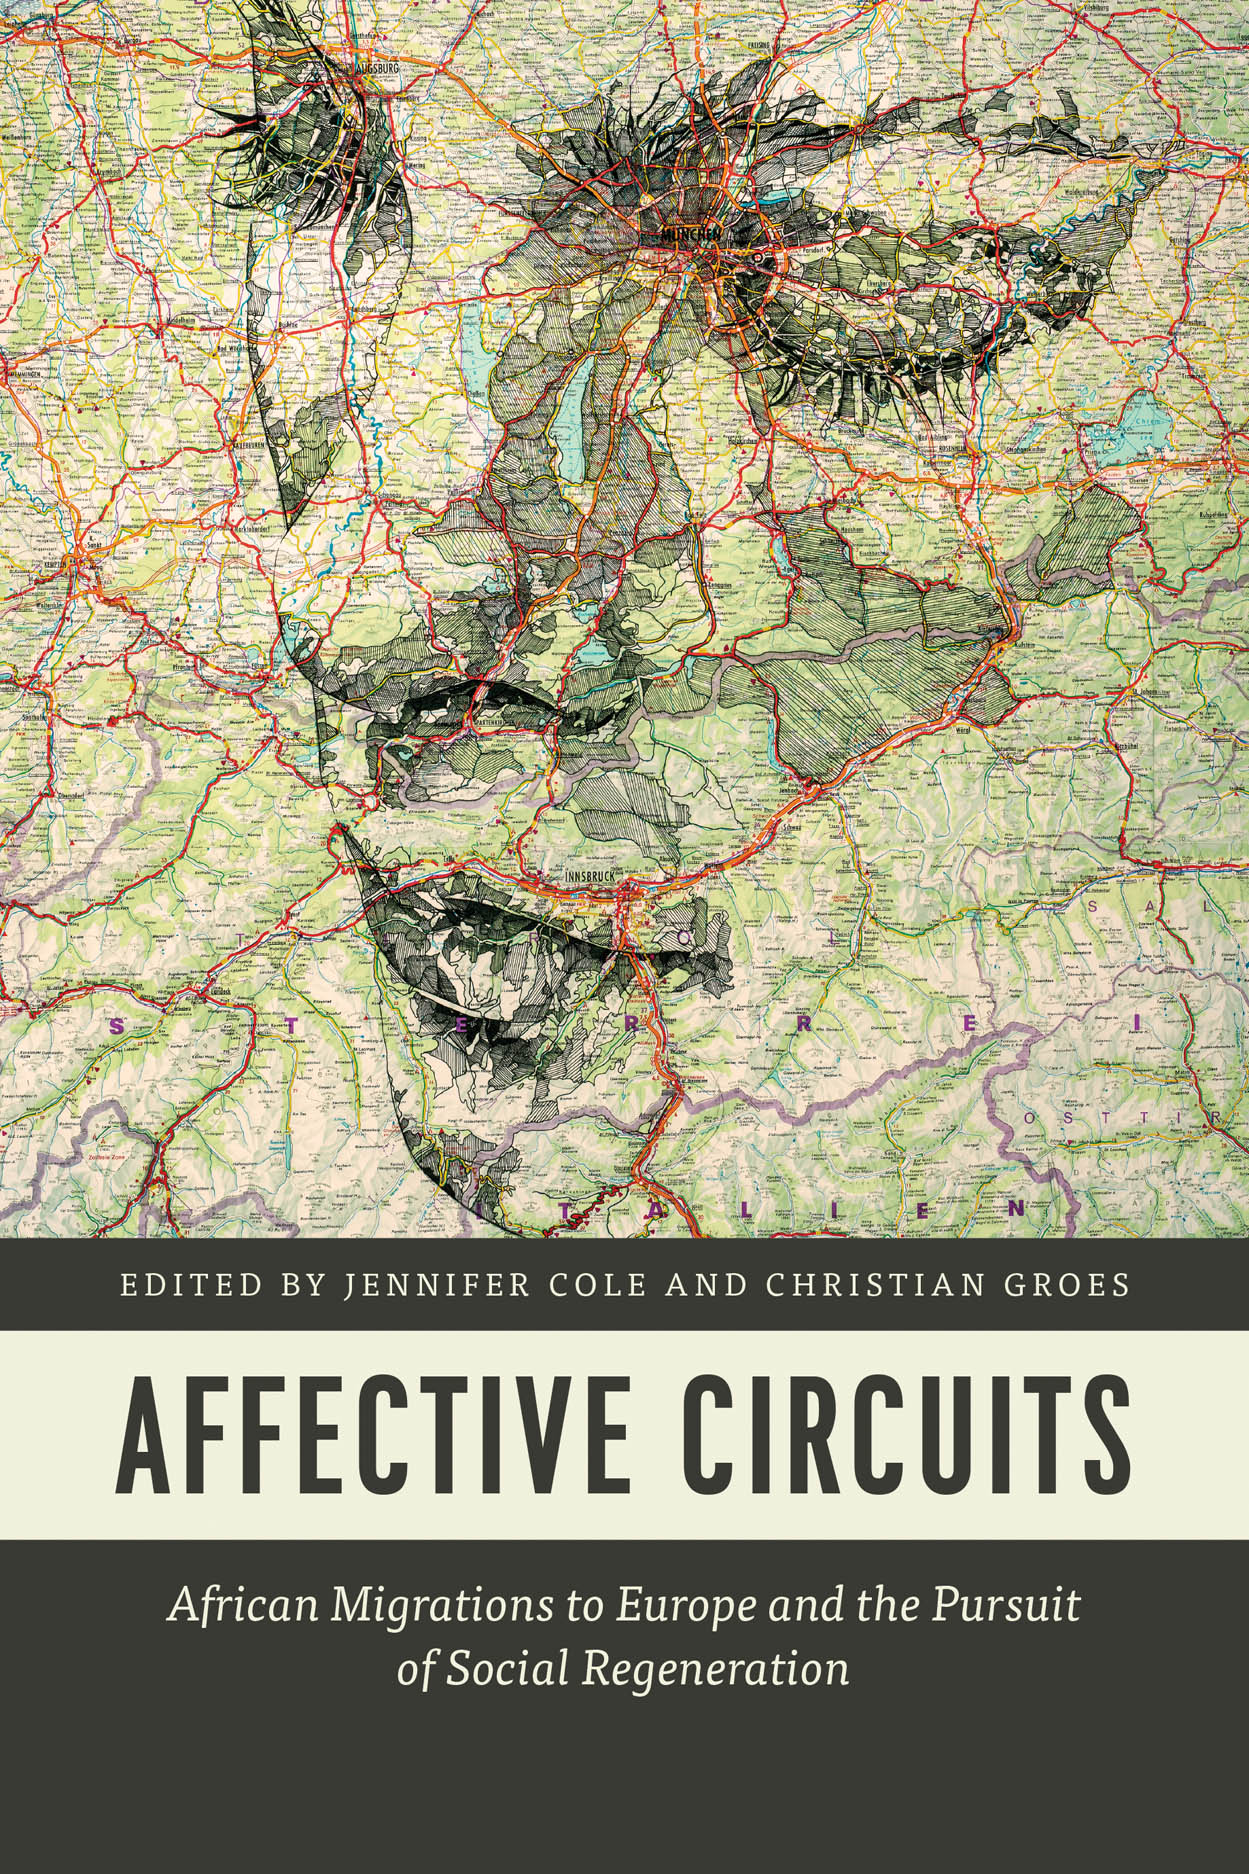 Affective Circuits: African Migrations to Europe and the Pursuit of Social Regeneration